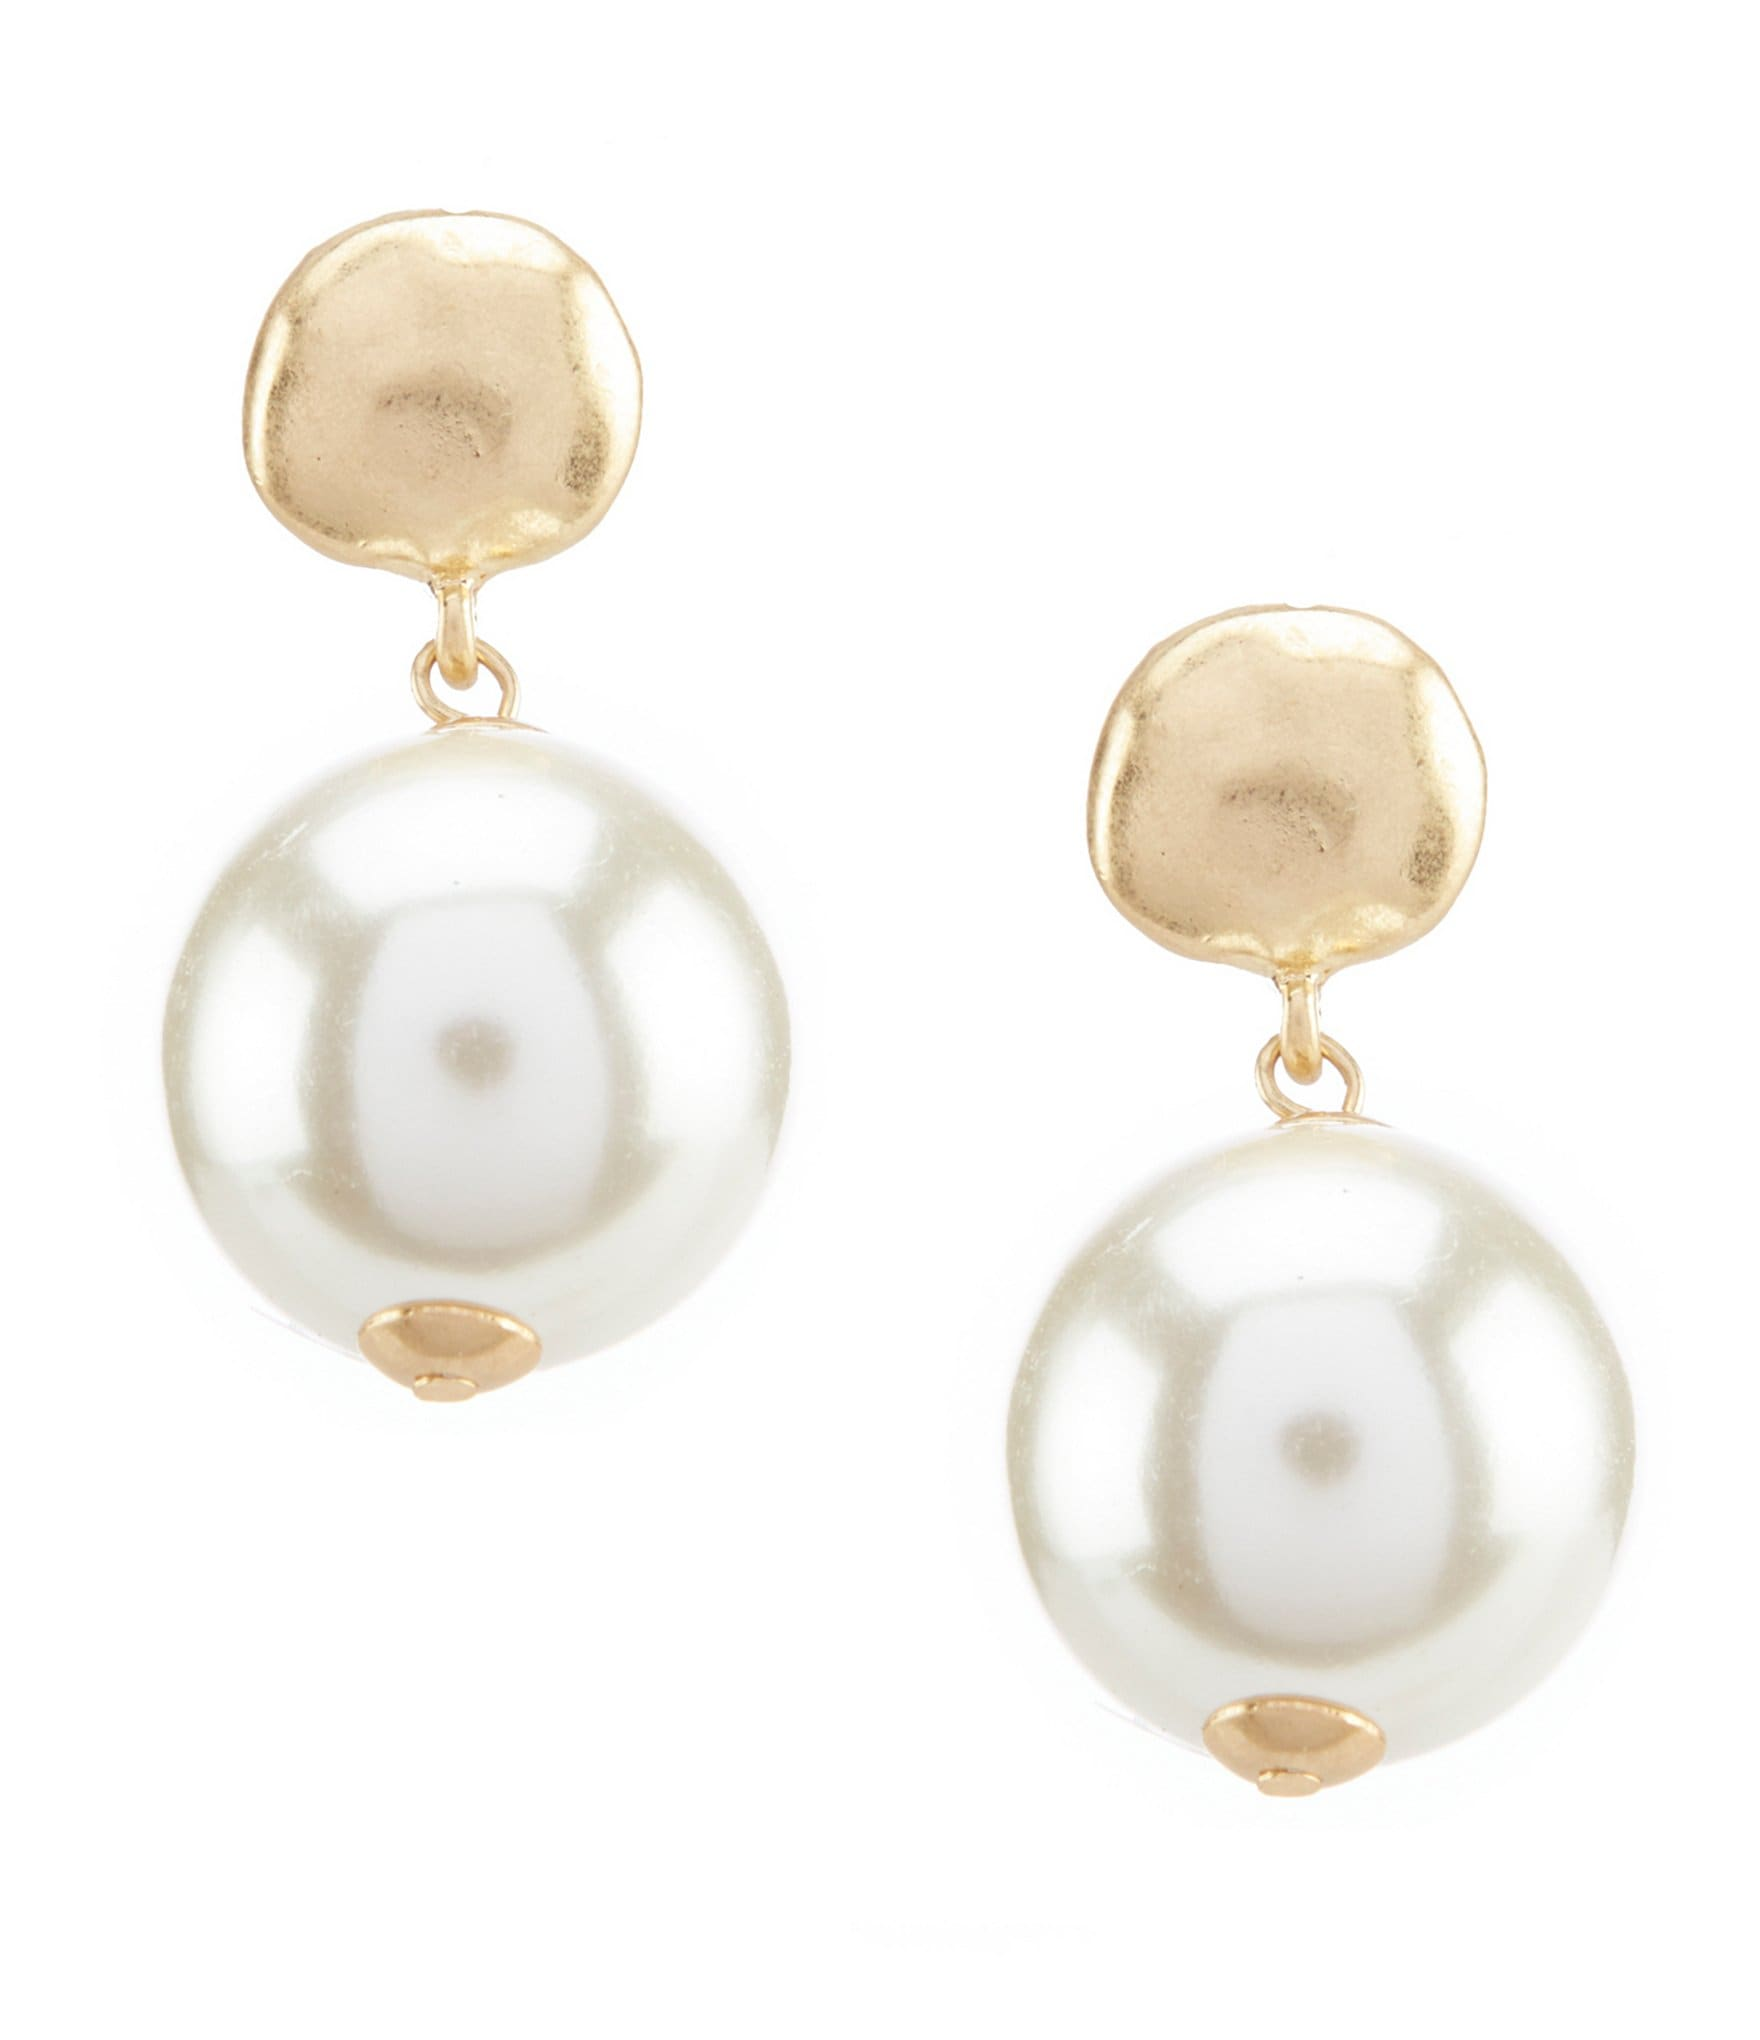 yg earrings earring natural shop pearl emerald stud